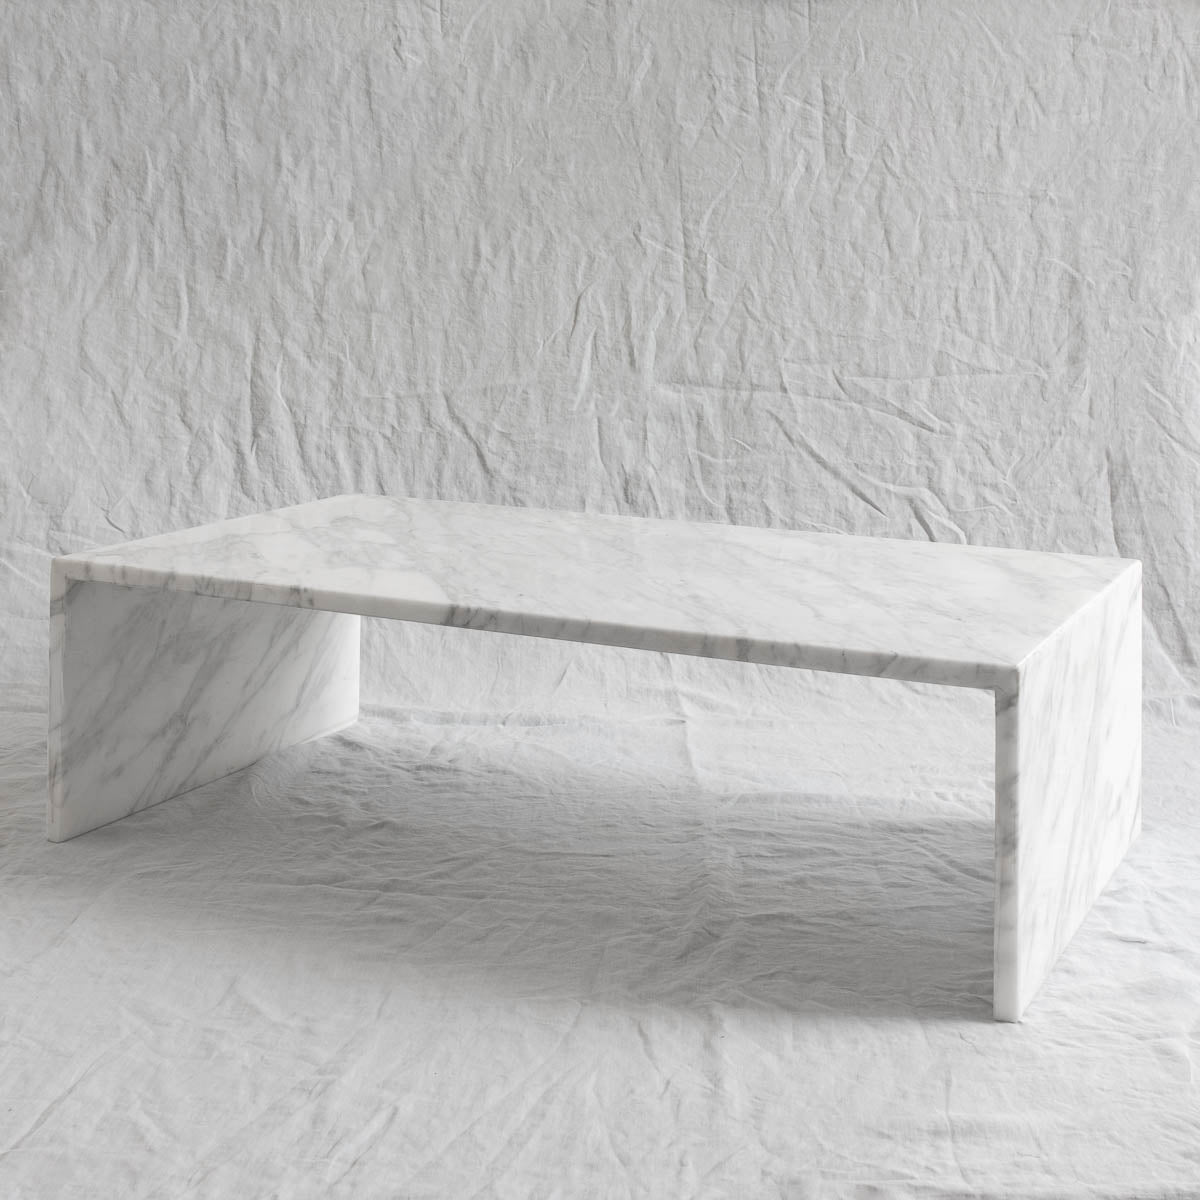 Just Adele | Calacatta coffee table | Marble & stone | Furniture design | Custom  | Melbourne made | Bespoke | Melbourne coffee table | Occasional table | Melbourne made | local design | marble coffee table | carrara coffee table | white stone coffee table